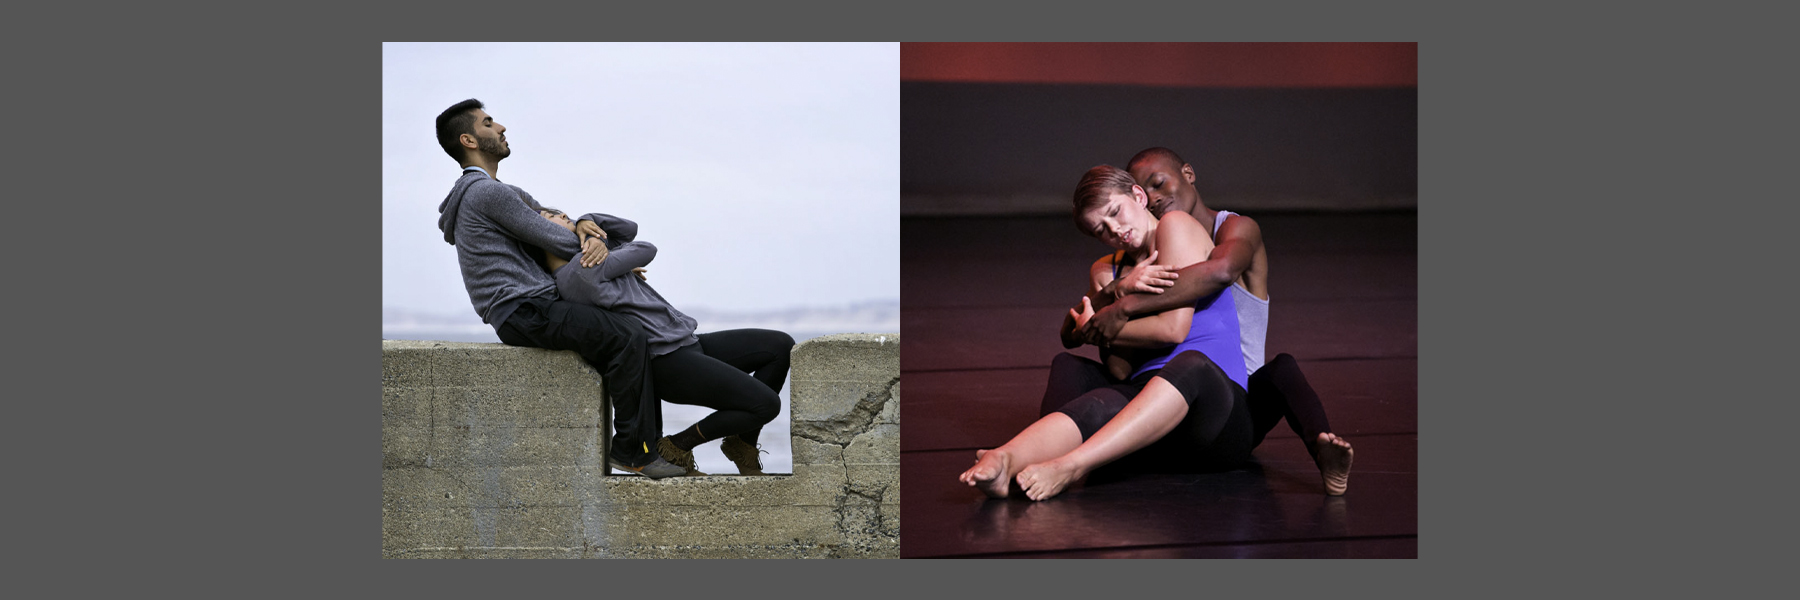 two sets of dancing couples in a pose